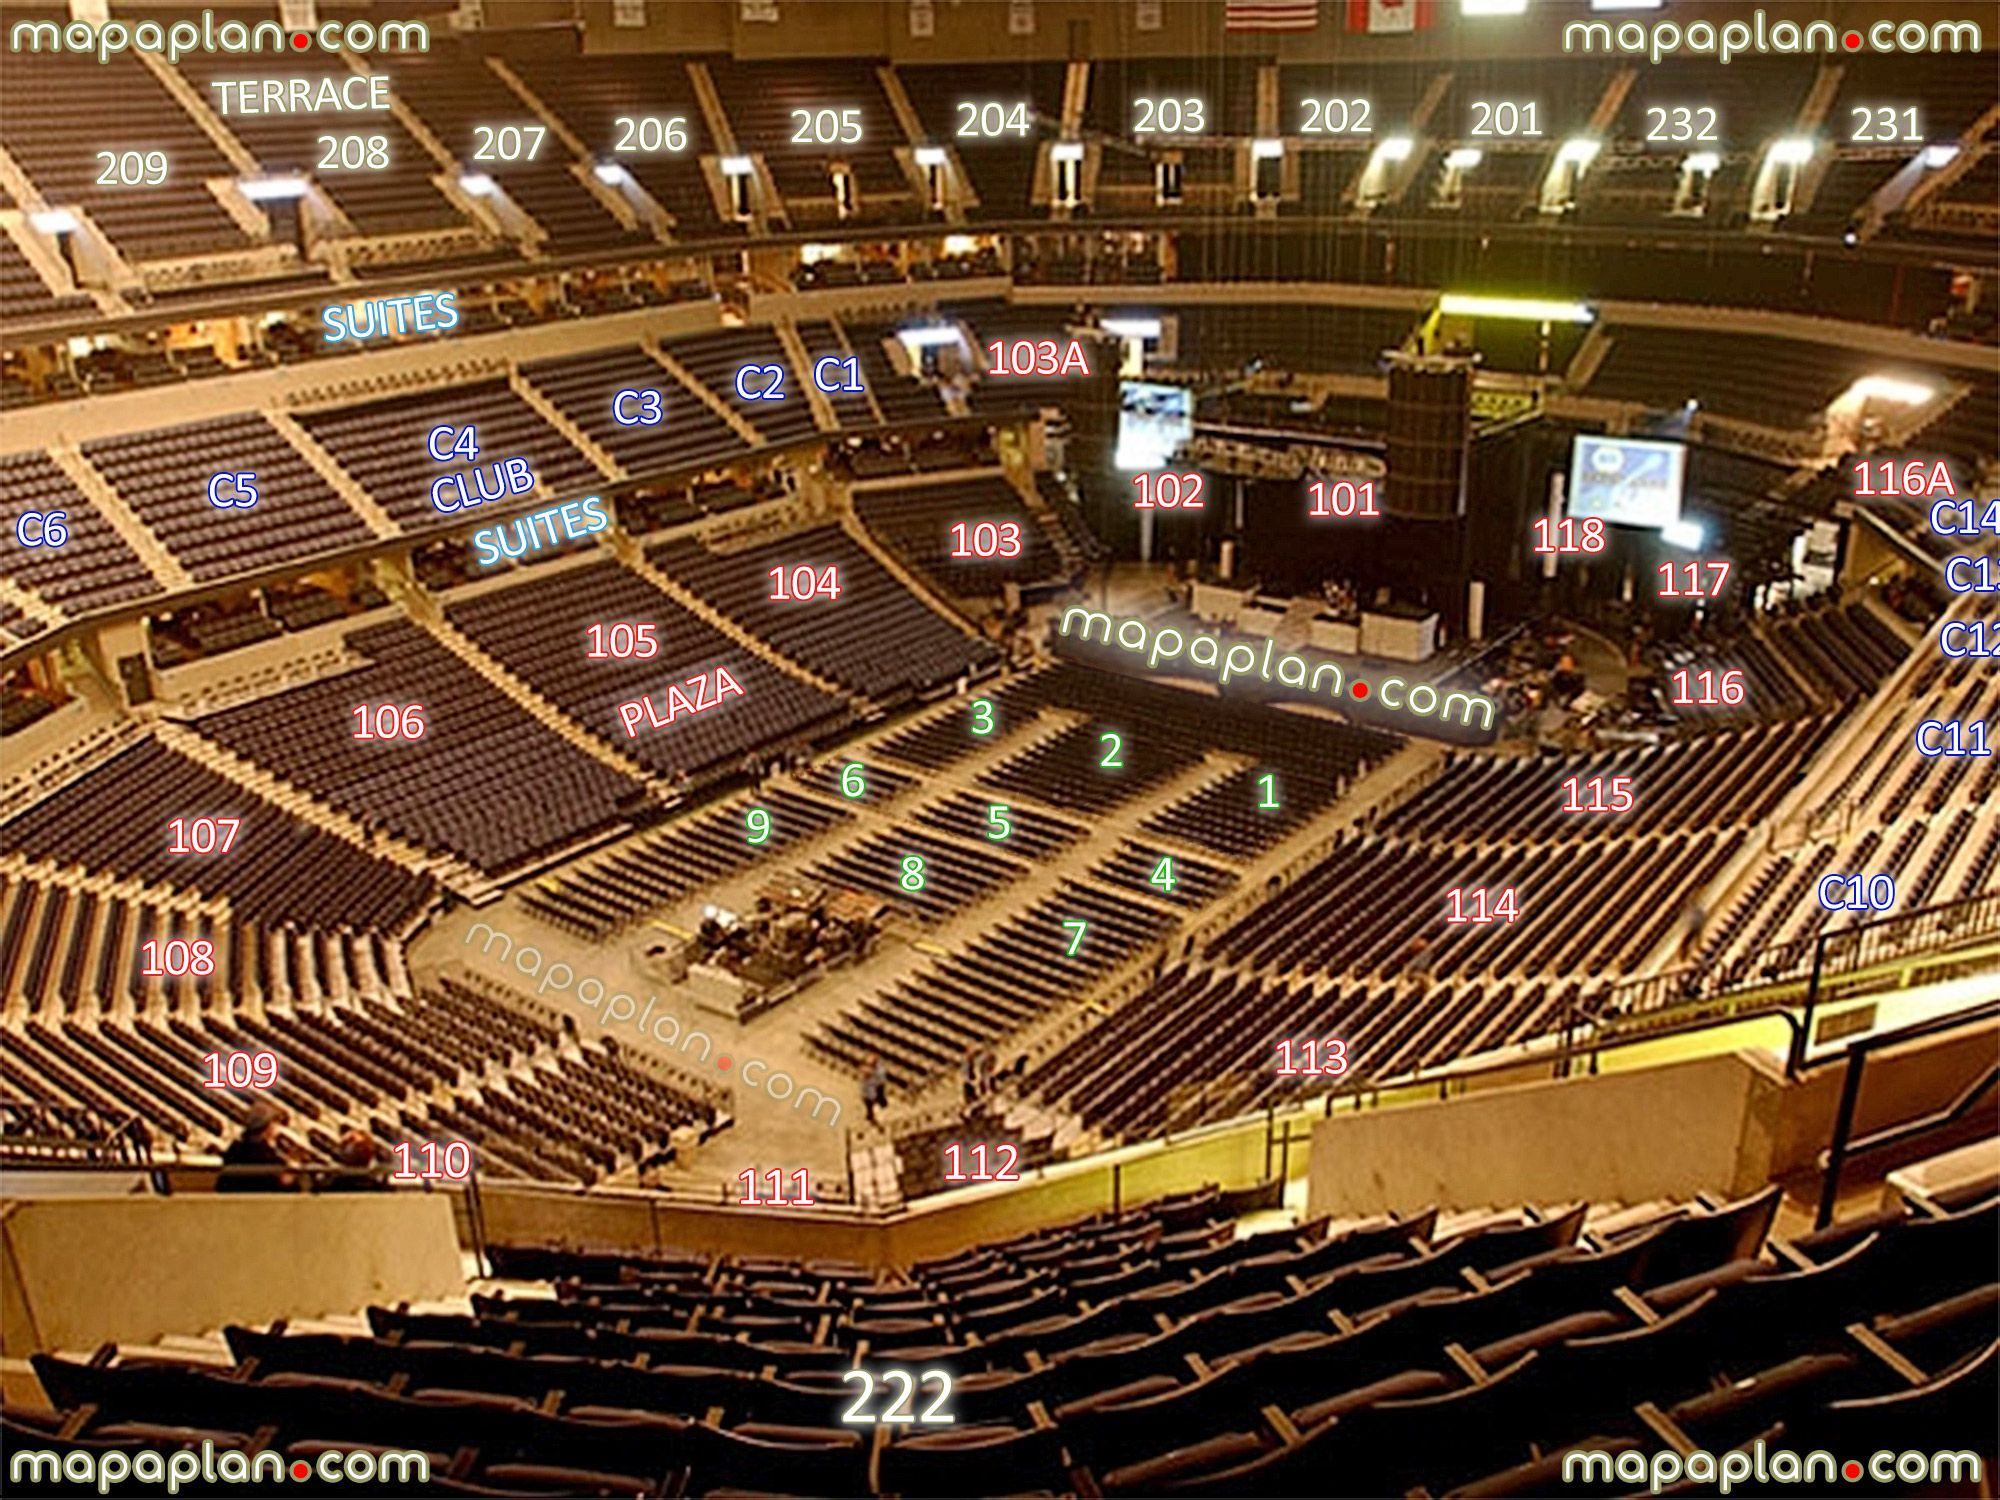 Forum seating chart view section row seat virtual venue  interactive inside also aksuy  eye rh